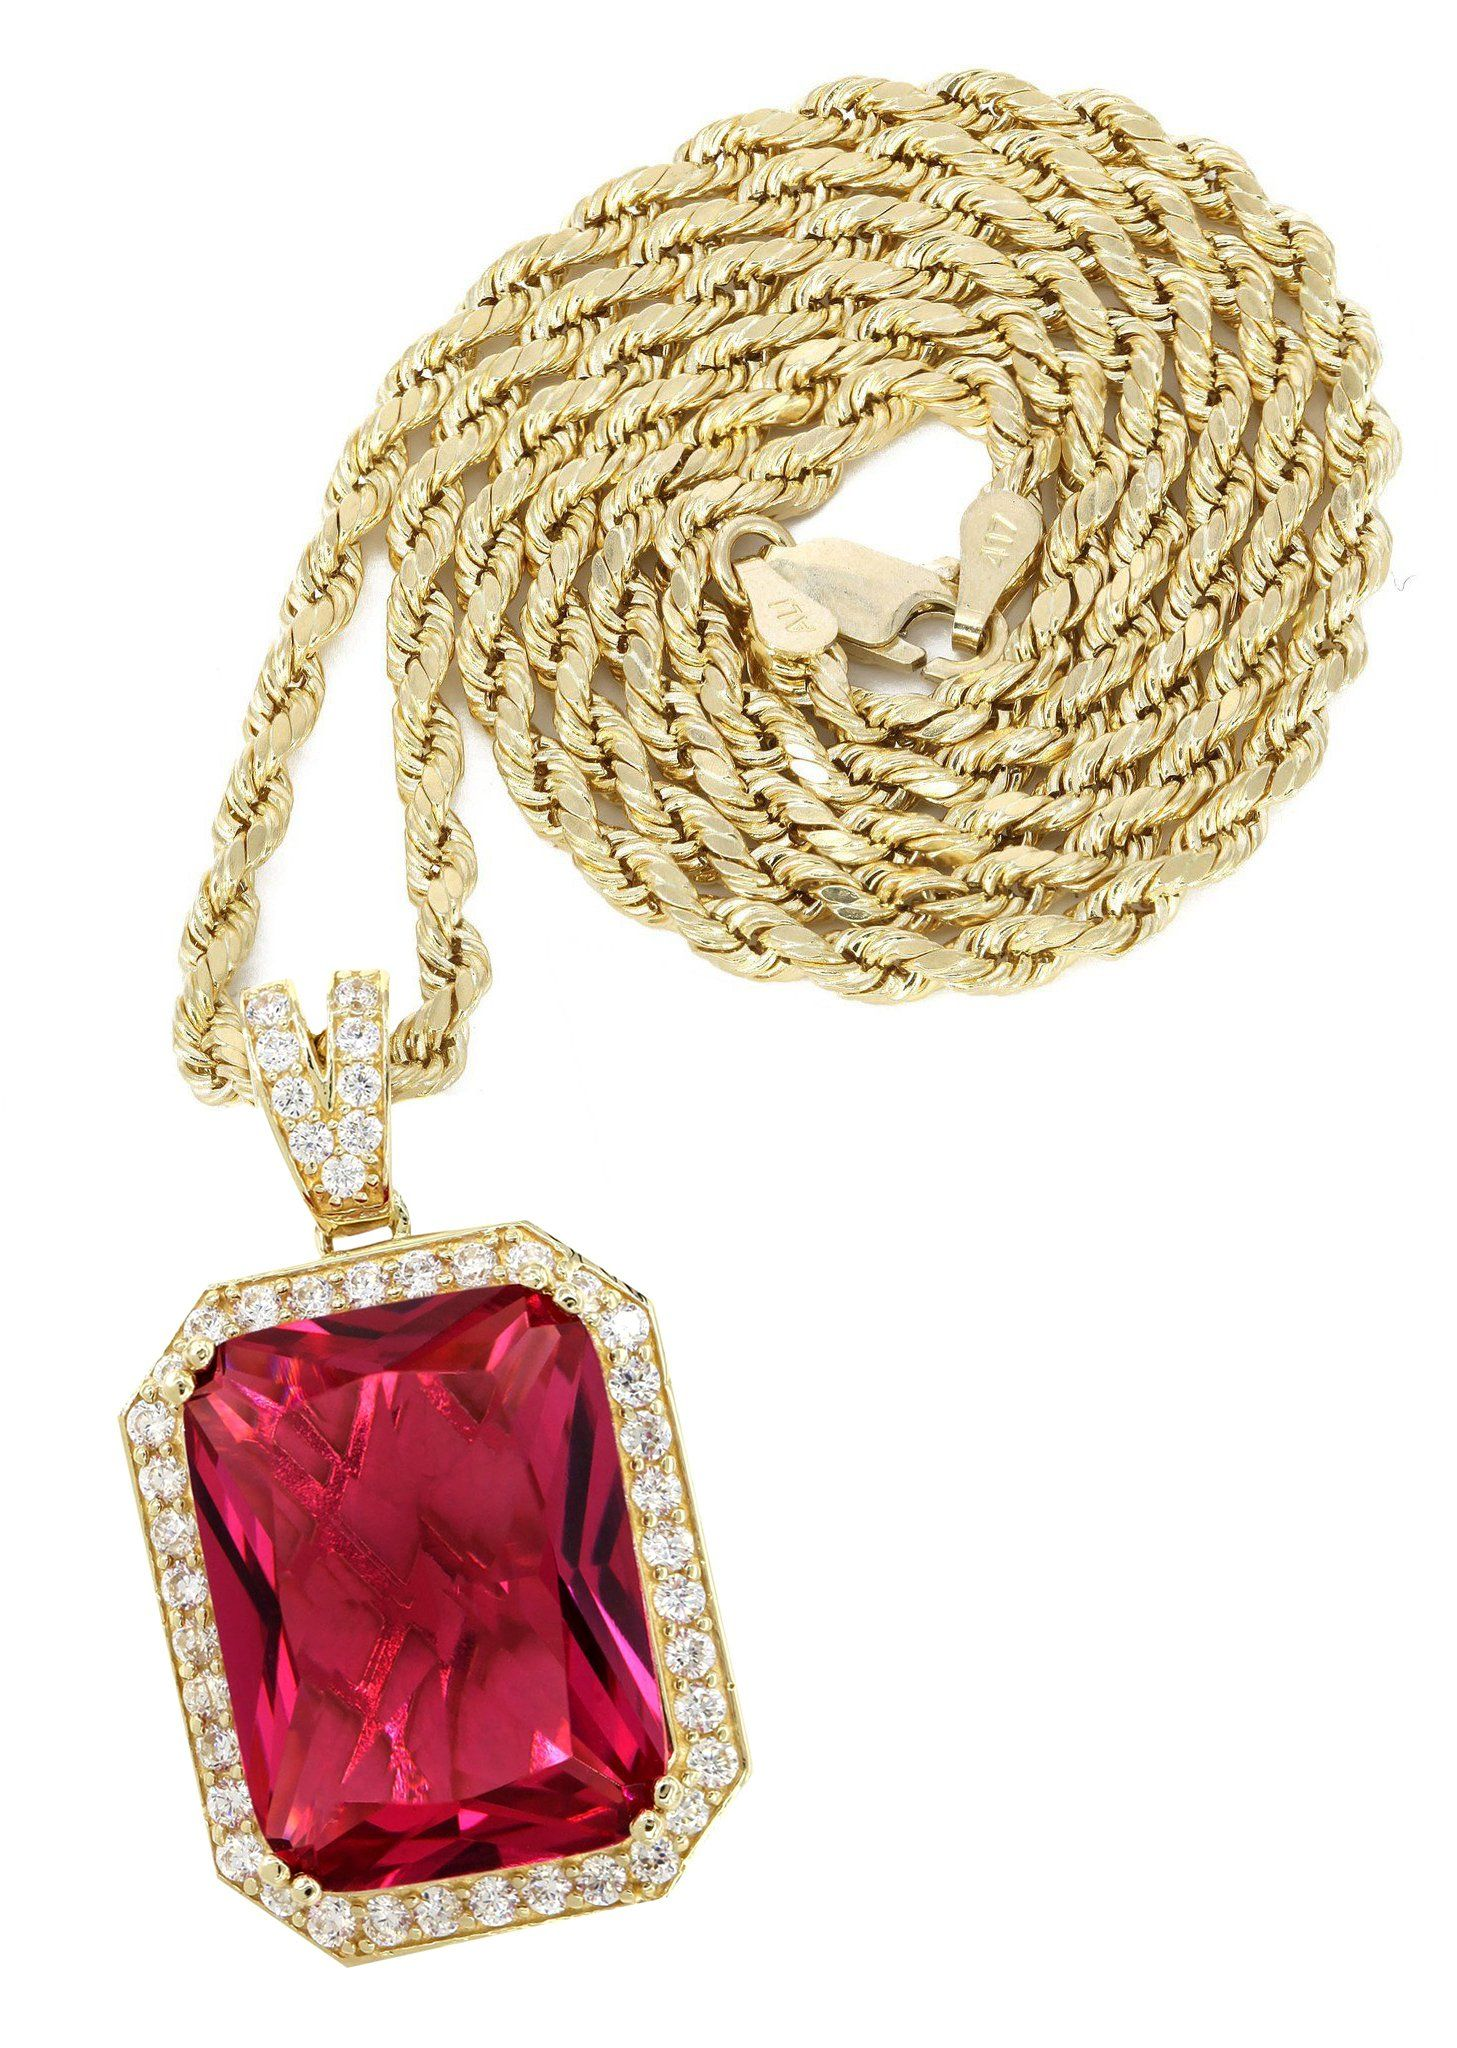 10K Yellow Gold Rope Chain & Cz Ruby Pendant / Appx. 22 Grams